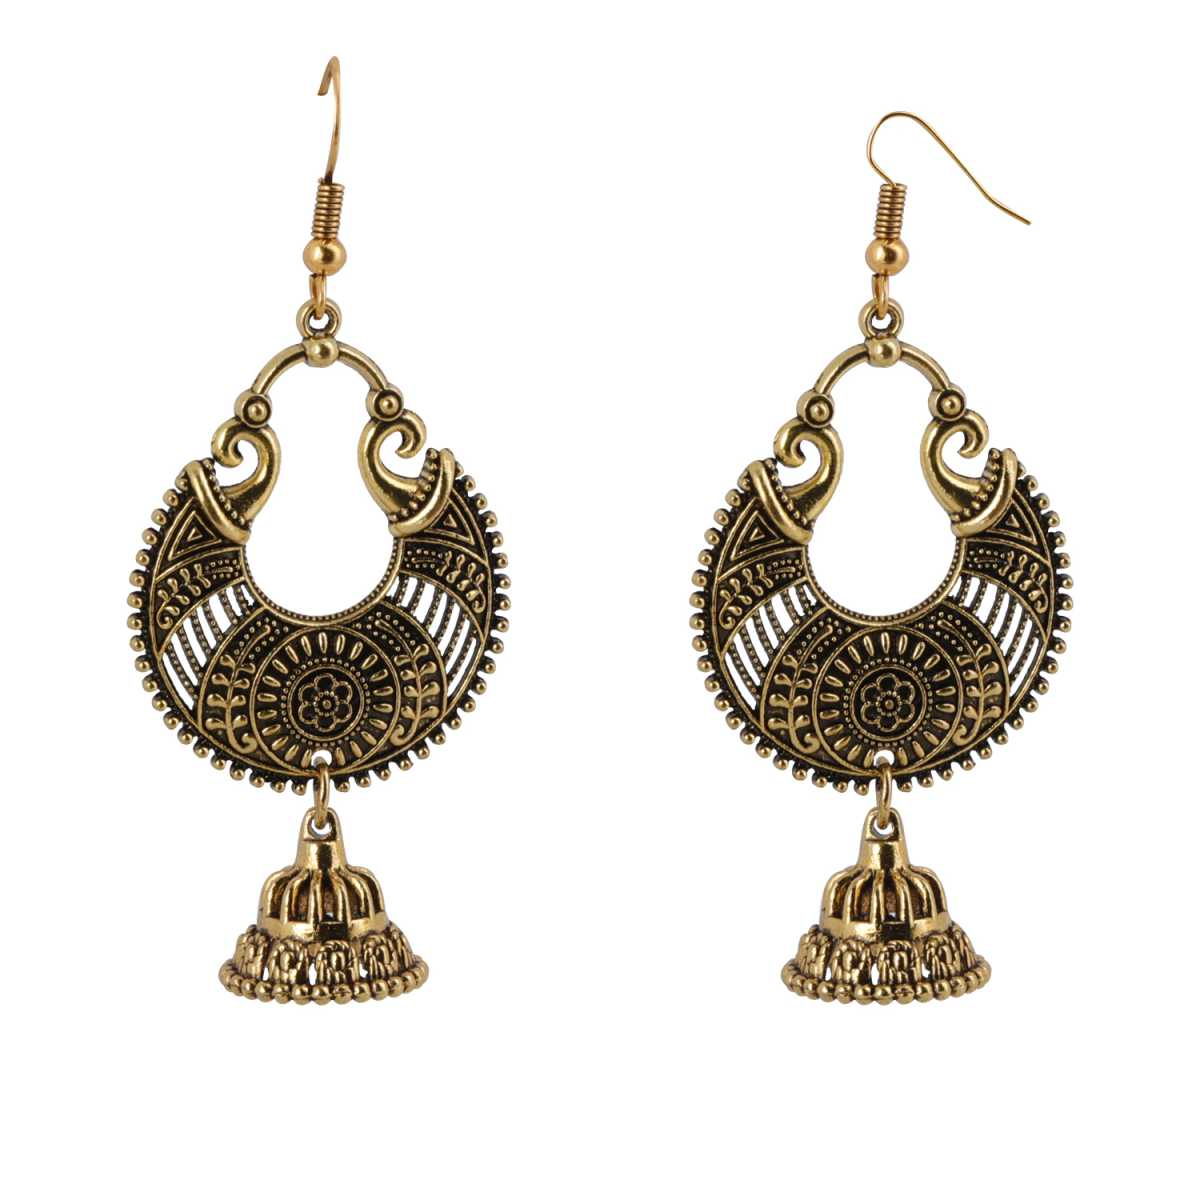 Silver Shine Spunky Golden Chandbali with Small Jhumki Earrings for Women